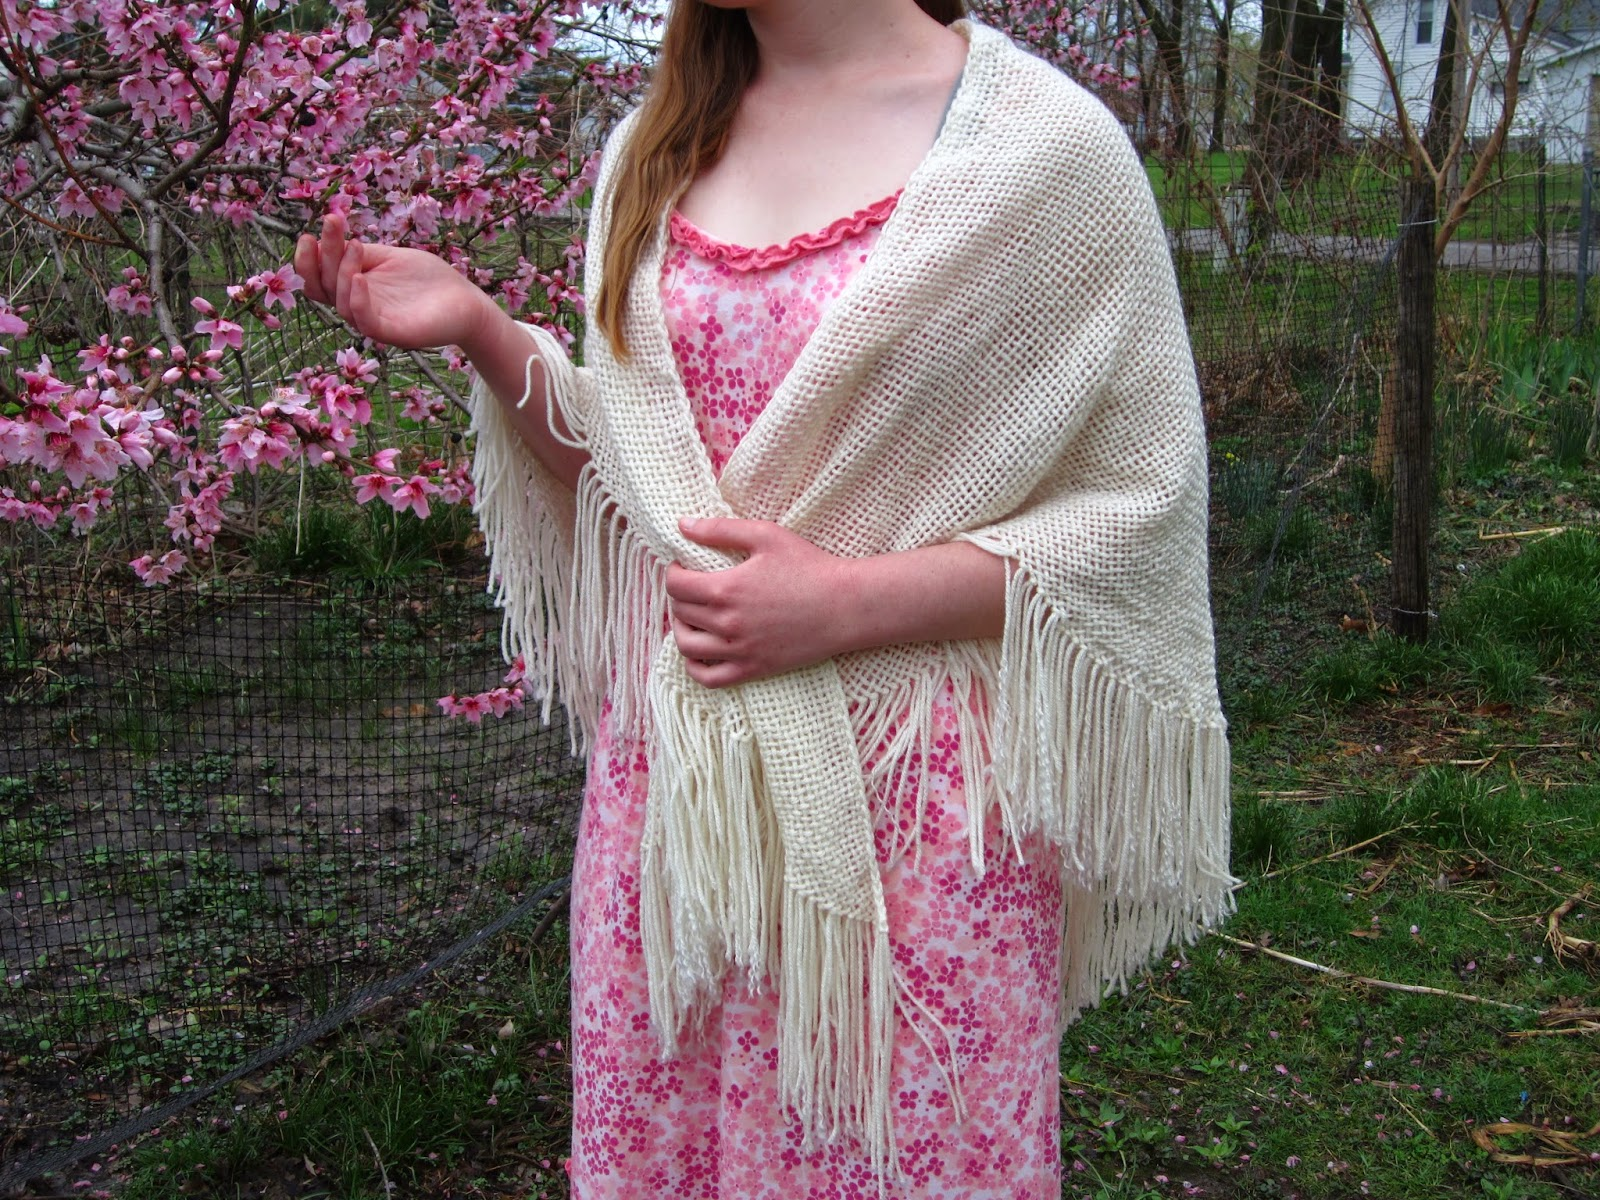 https://www.etsy.com/listing/229345993/hand-woven-lacy-shawl-triangle-shawl?ref=shop_home_active_1